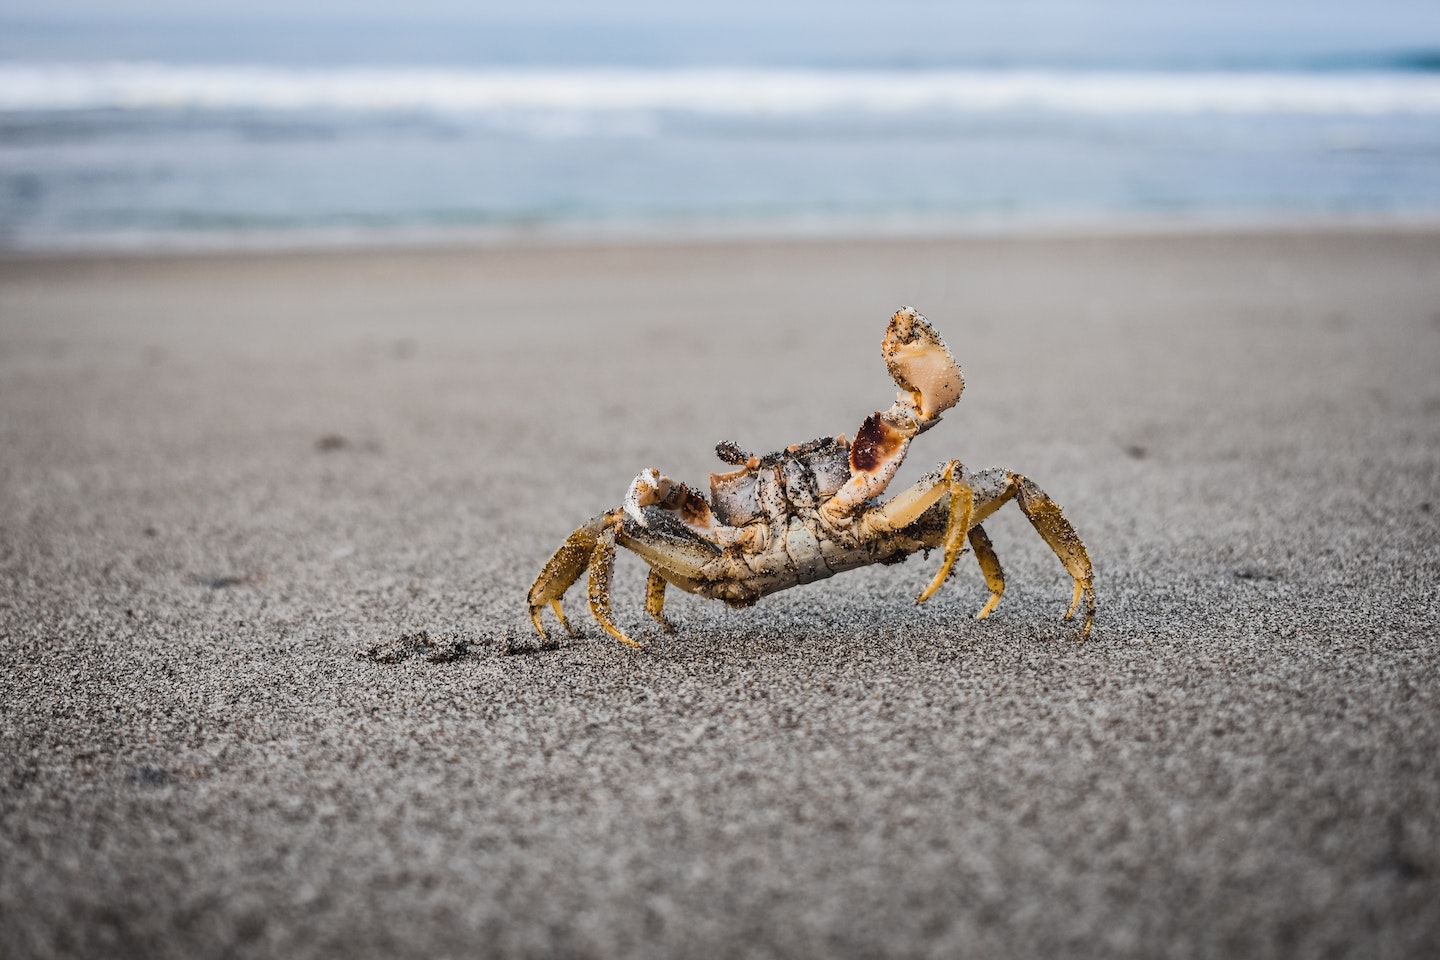 A crab standing in wet, packed sand, waving as the tide gently laps the shore behind him